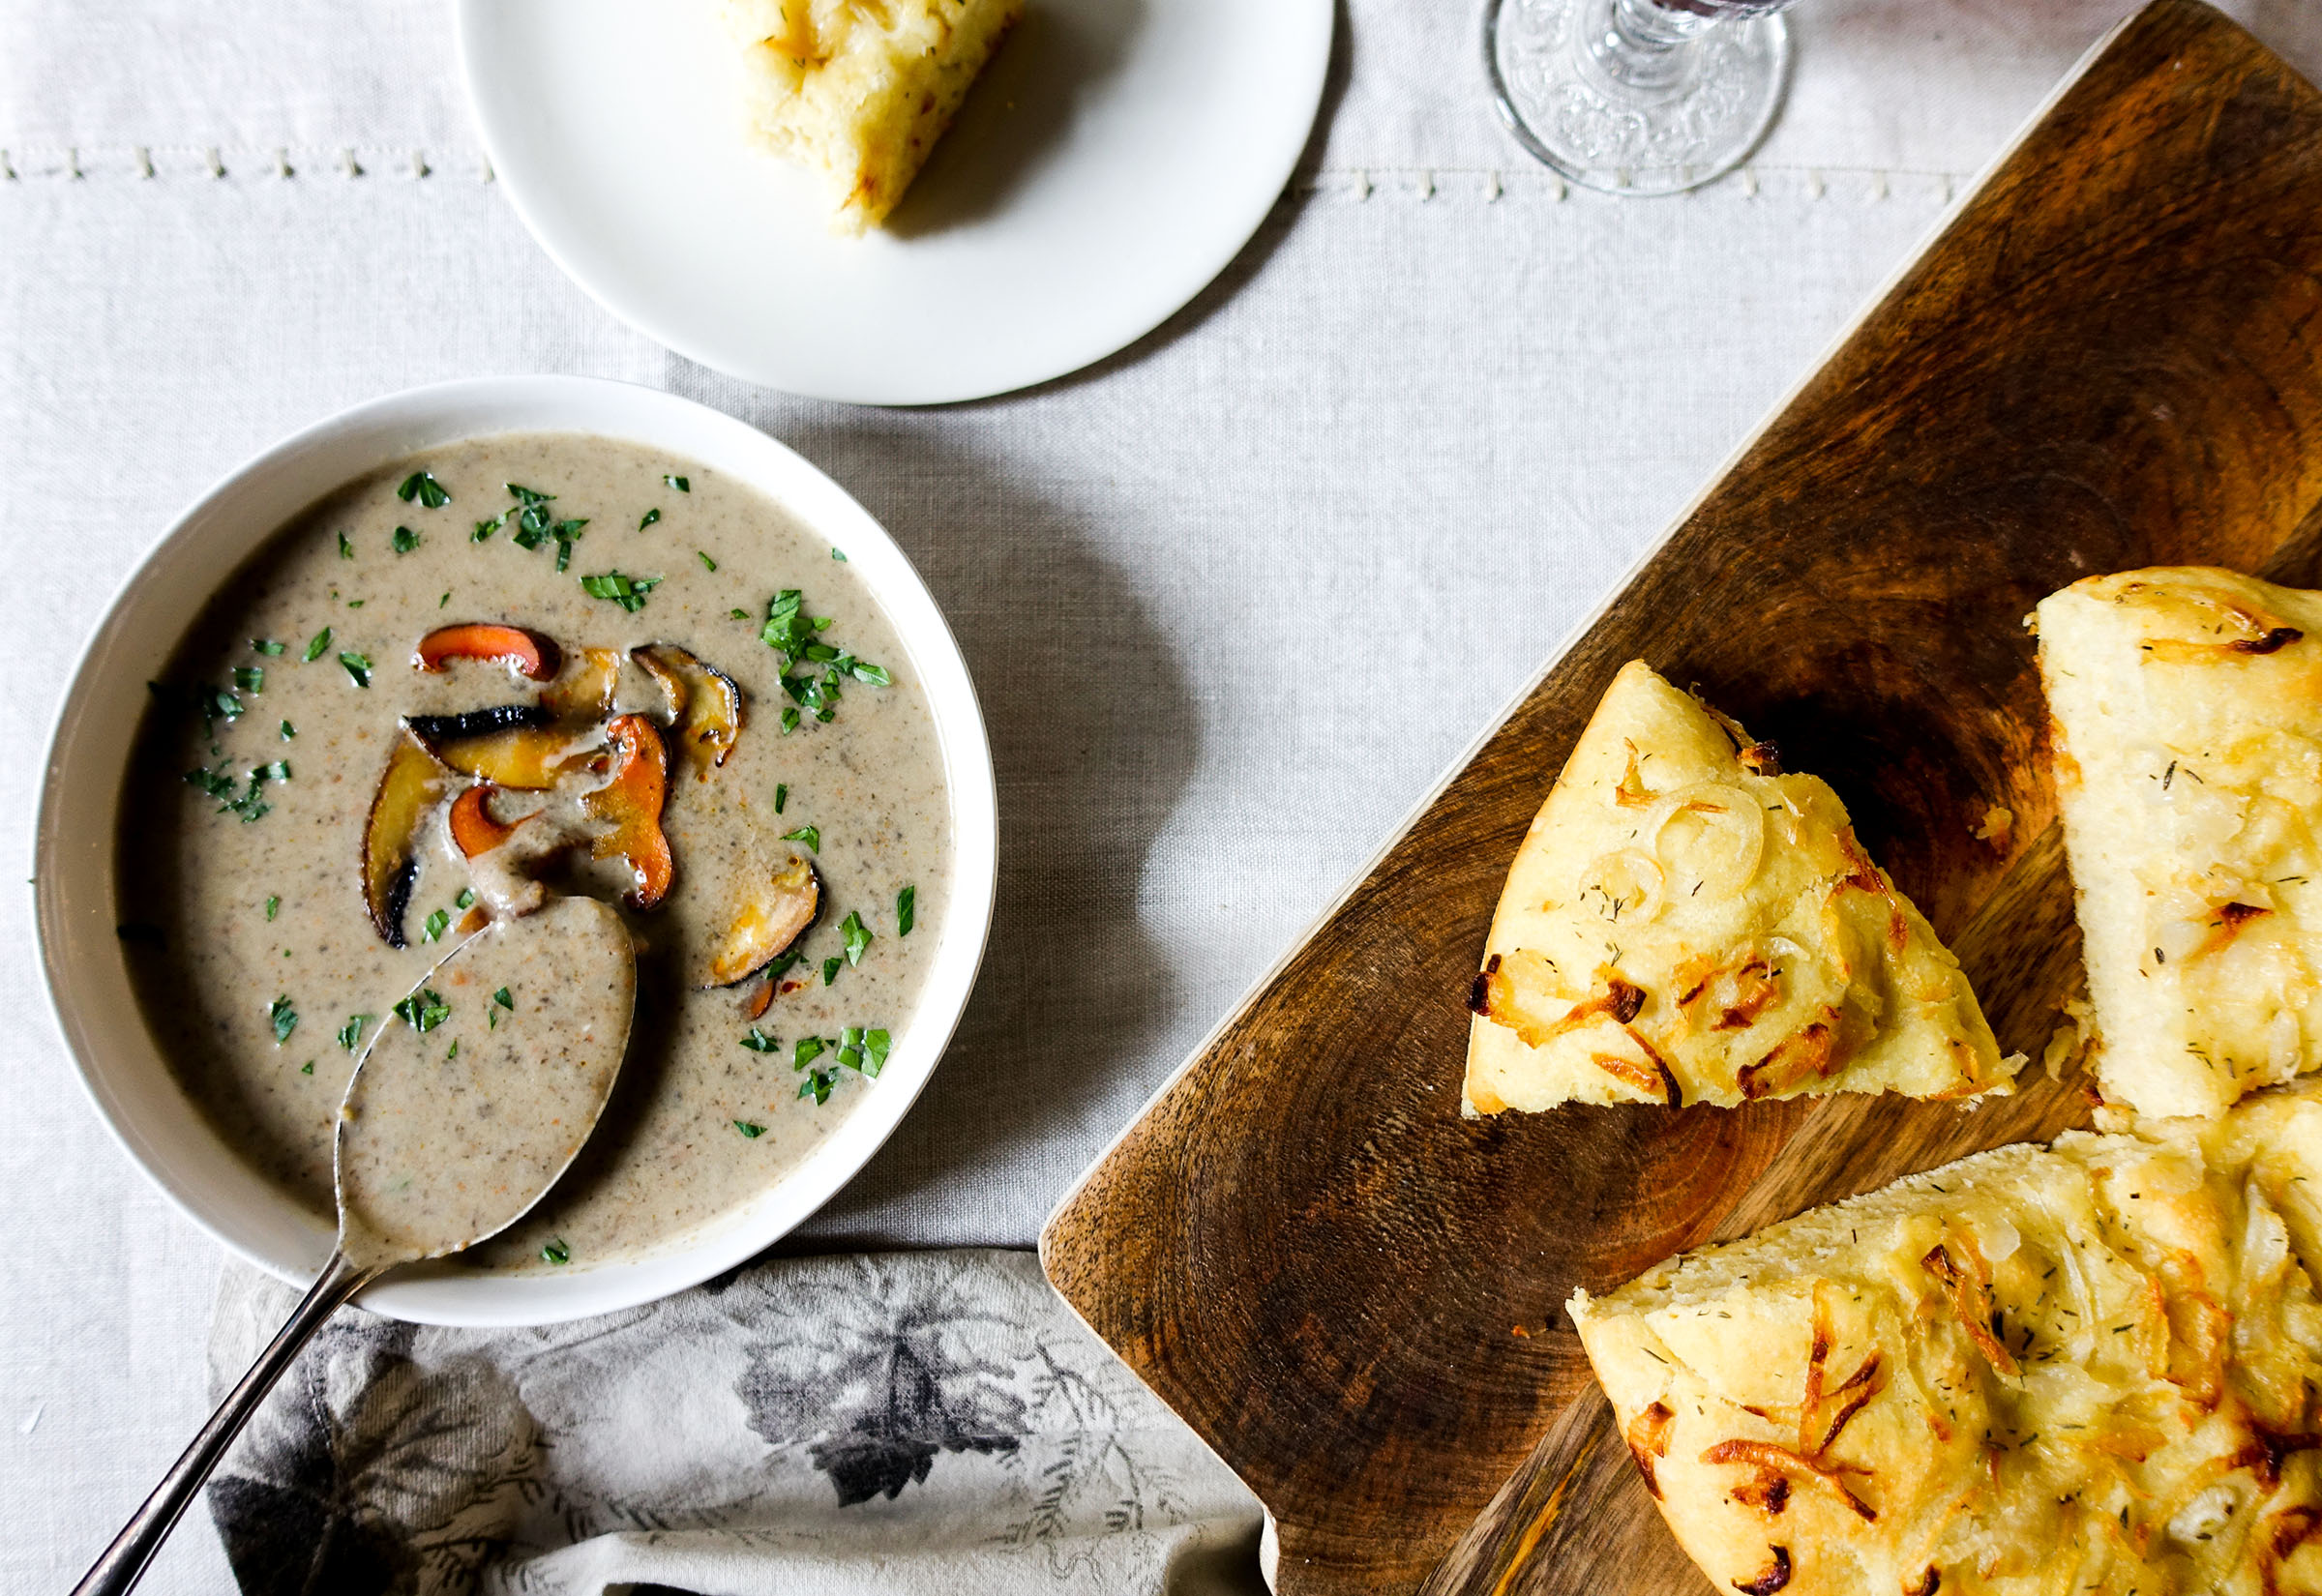 Mushroom and potato soup with cipolline onion focaccia – zuppa di funghi e patate con focaccia alle cipolline